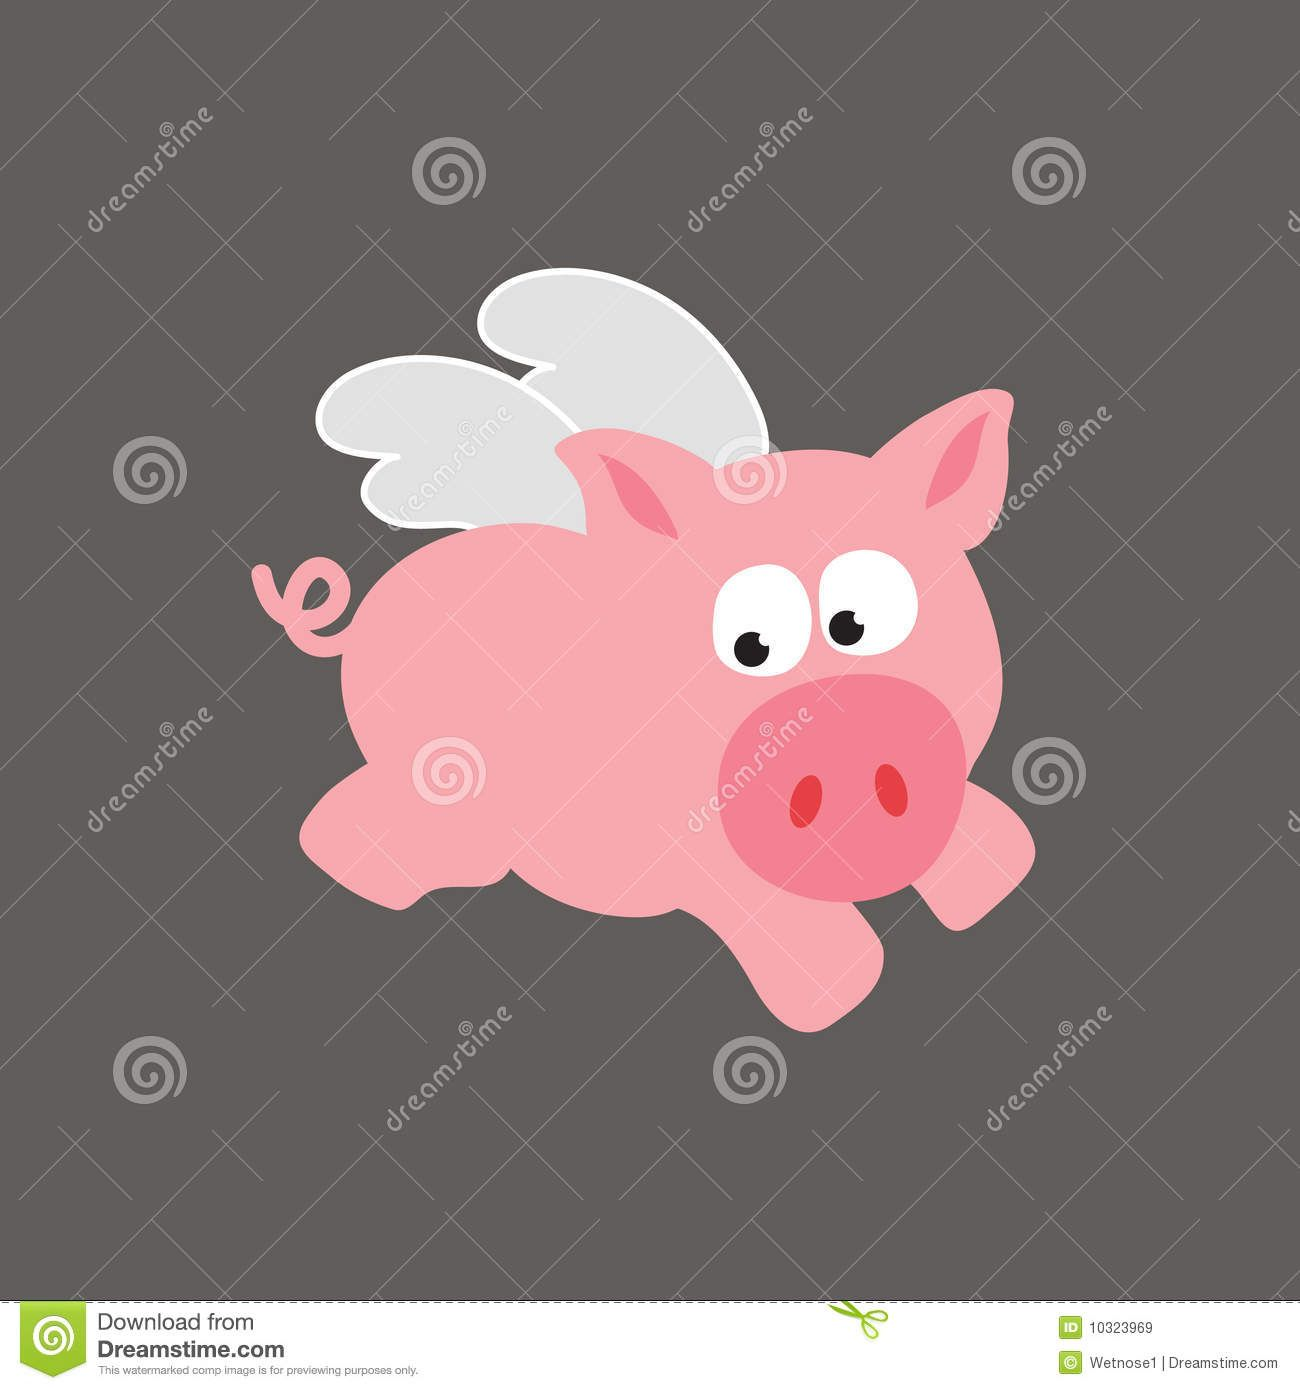 Image result for flying pig cartoon cute with images